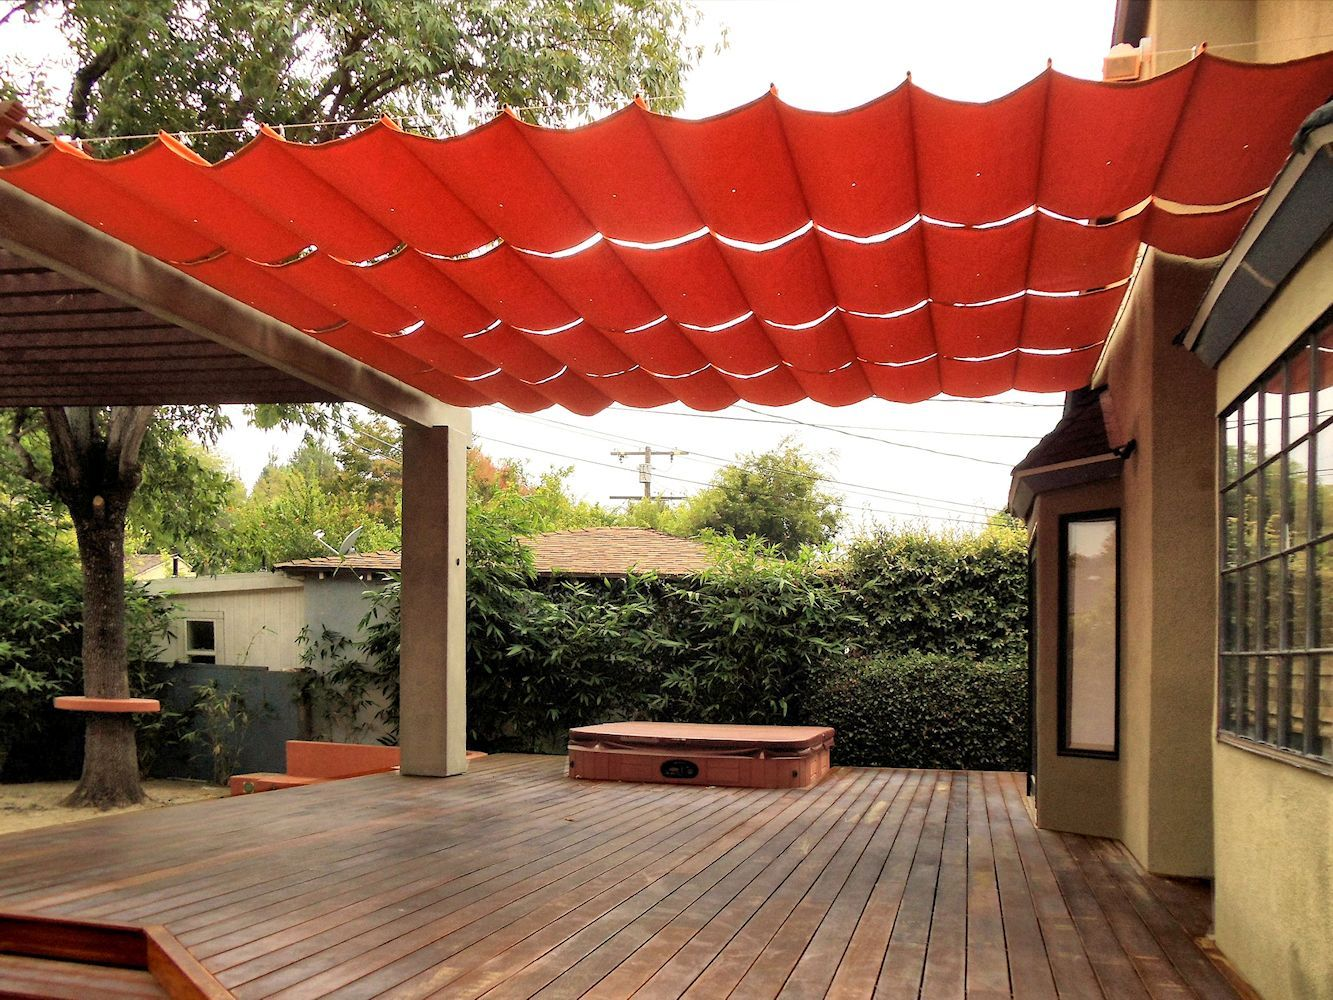 9 Clever DIY Ways for a Shady Backyard Oasis & 9 Clever DIY Ways for a Shady Backyard Oasis | Deck patio Canopy ...